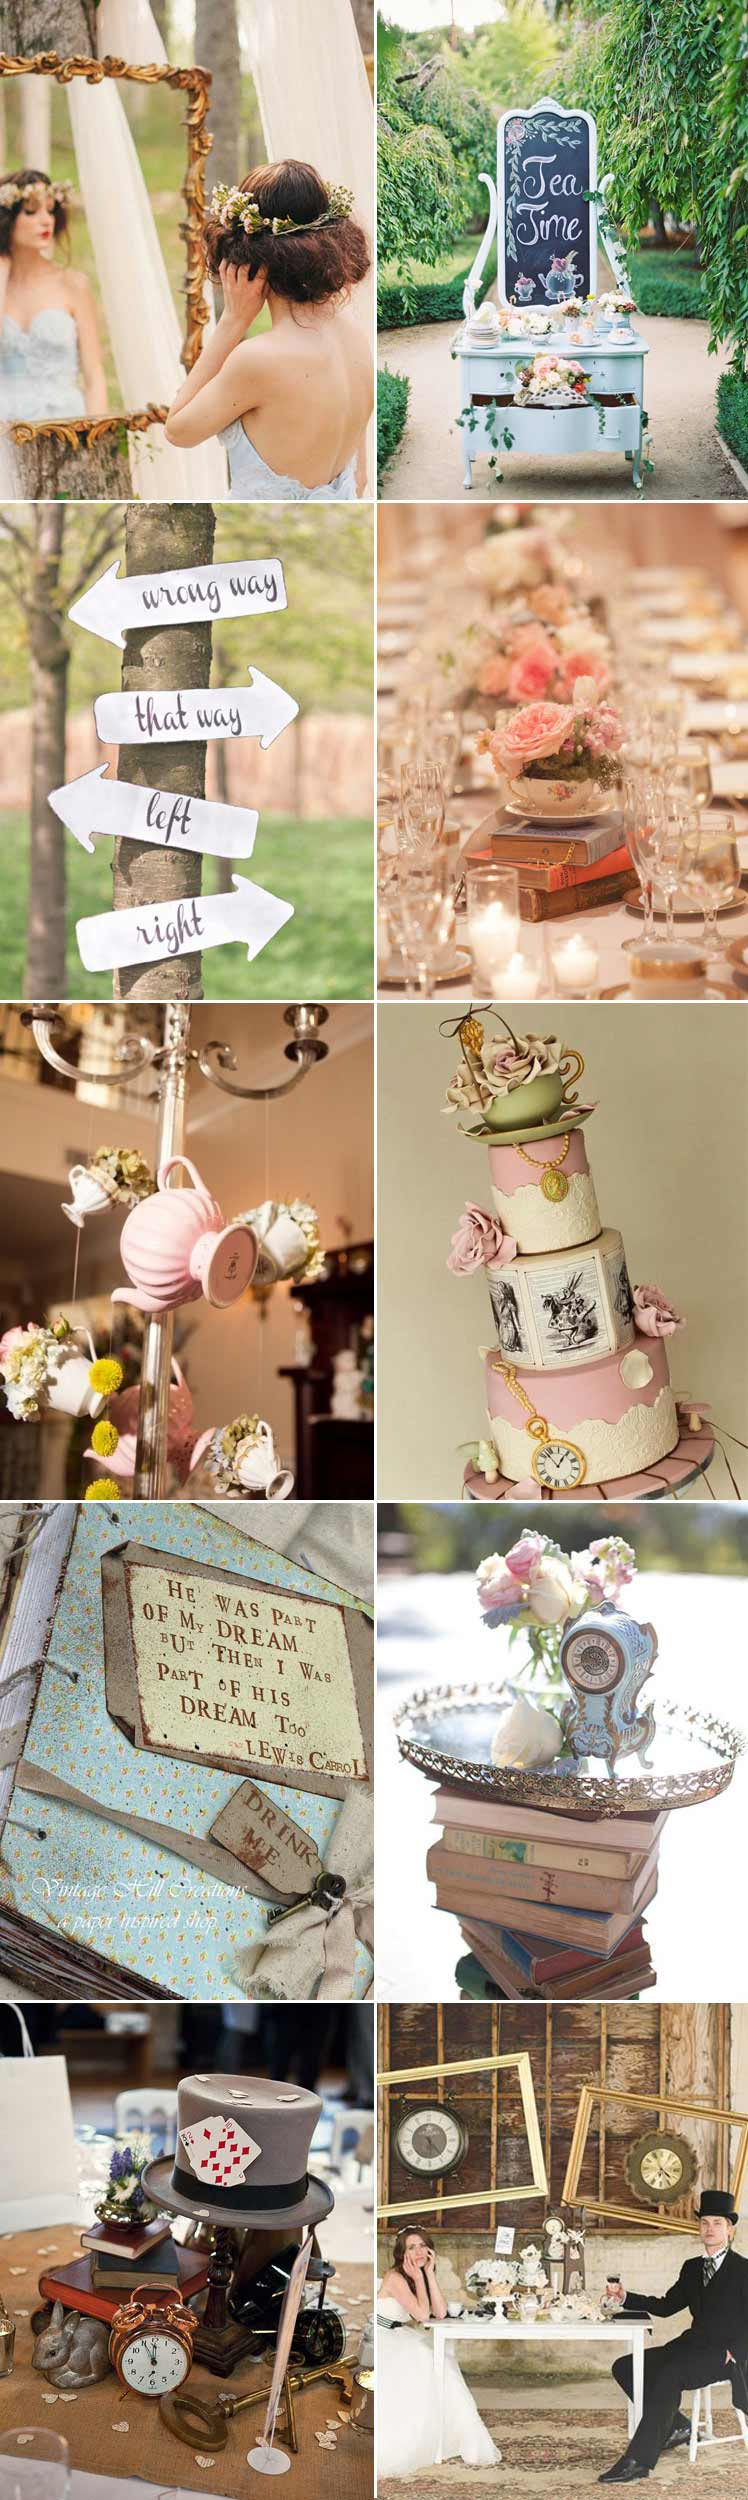 Quirky reception ideas for an Alice in Wonderland wedding